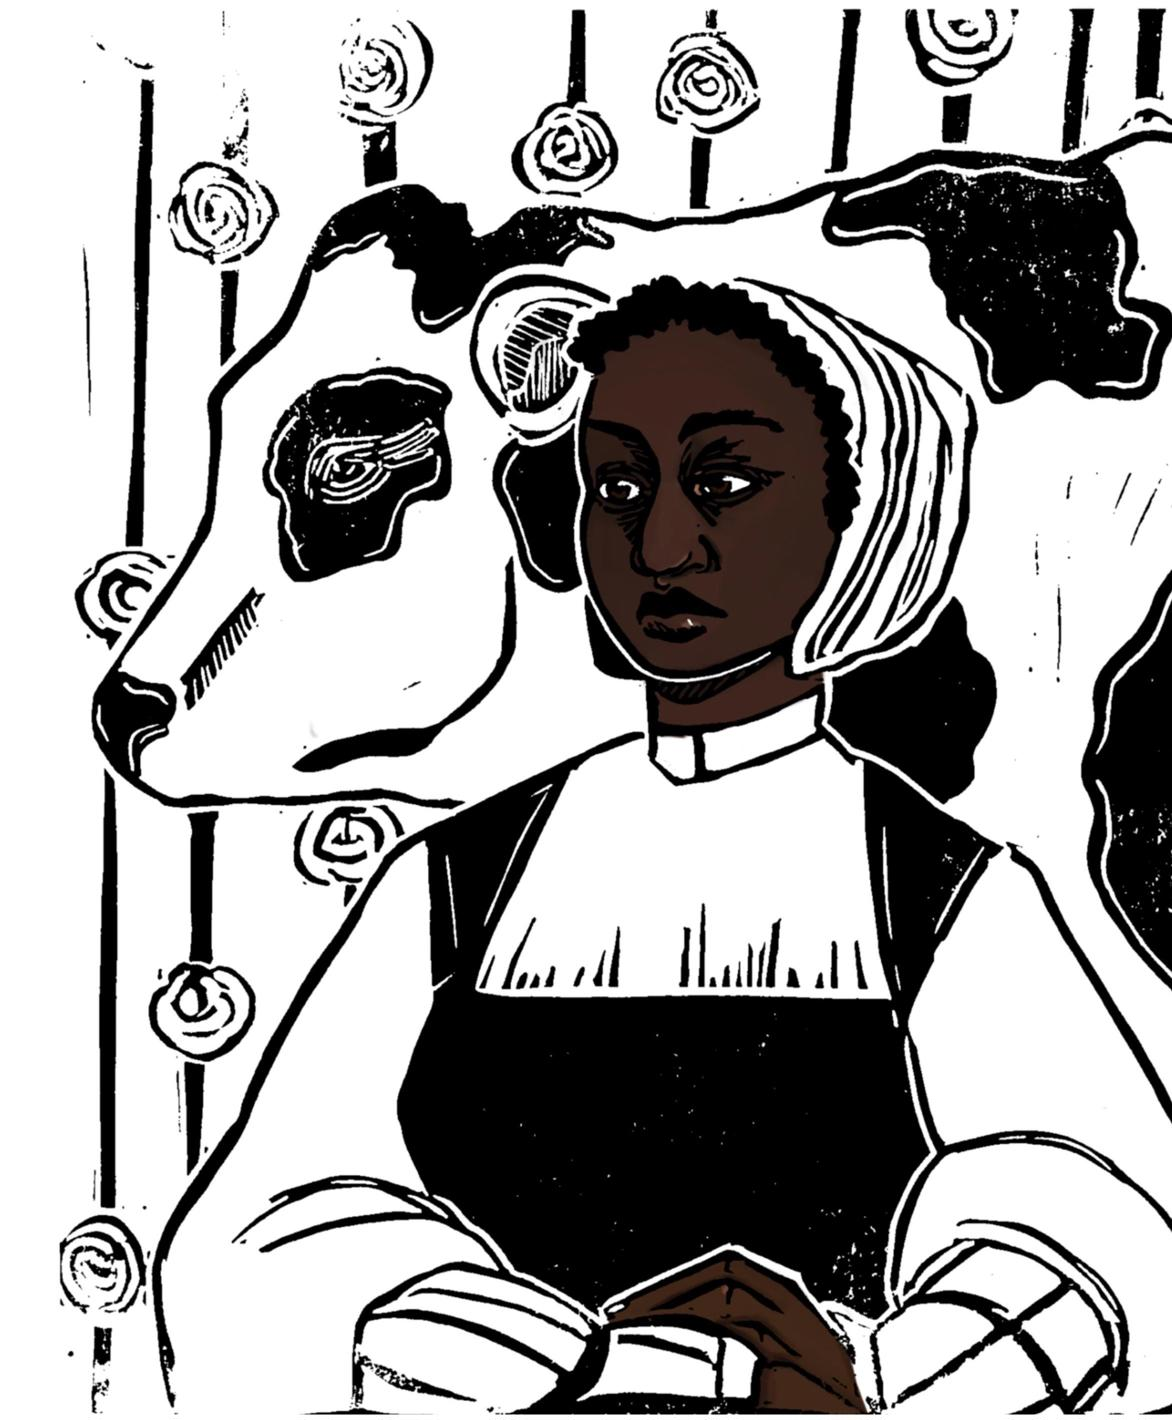 A lino print of a 16th century Black woman dressed in clothes of the time; her white collar tight around her neck and her bonnet covering her hair. Behind the woman is a black and white cow, peering over her shoulder. The wall behind them is wooden, evident from the texture of the wood recreated in print.